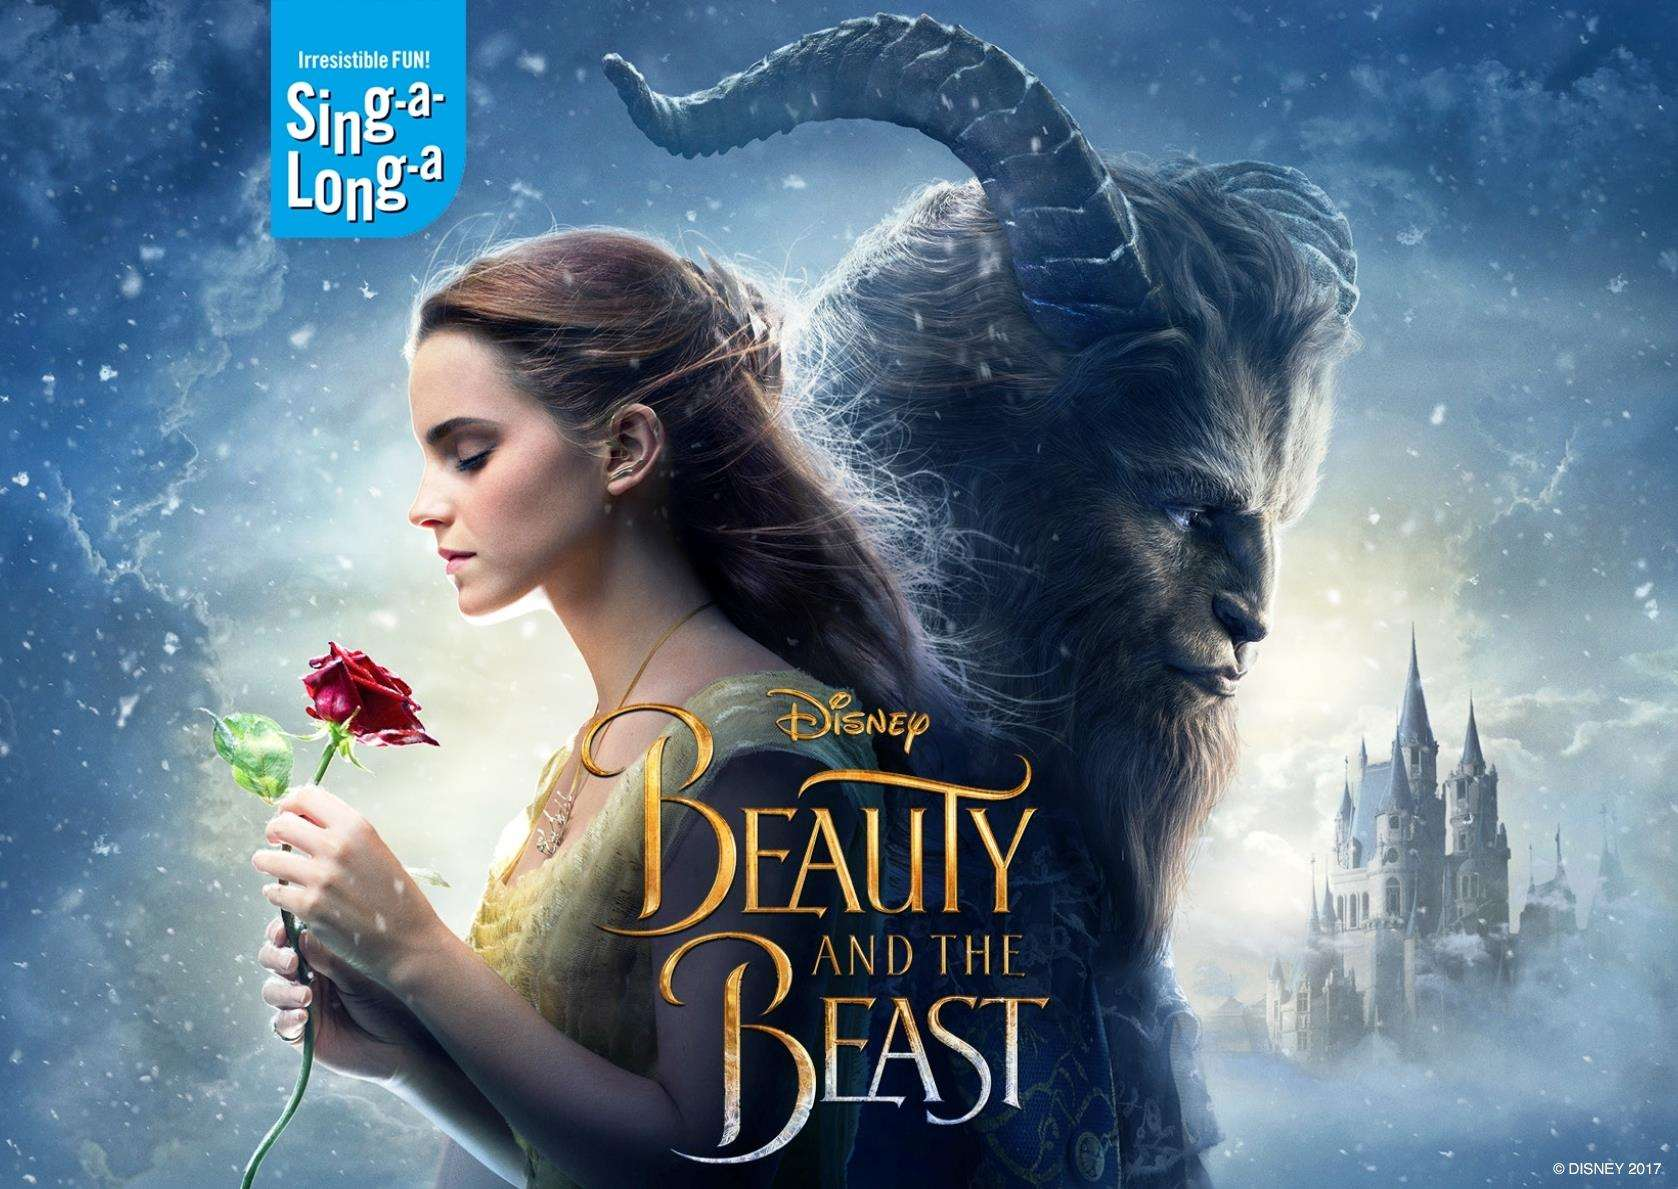 Beauty and the Beast Sing-a-Long (1937034)